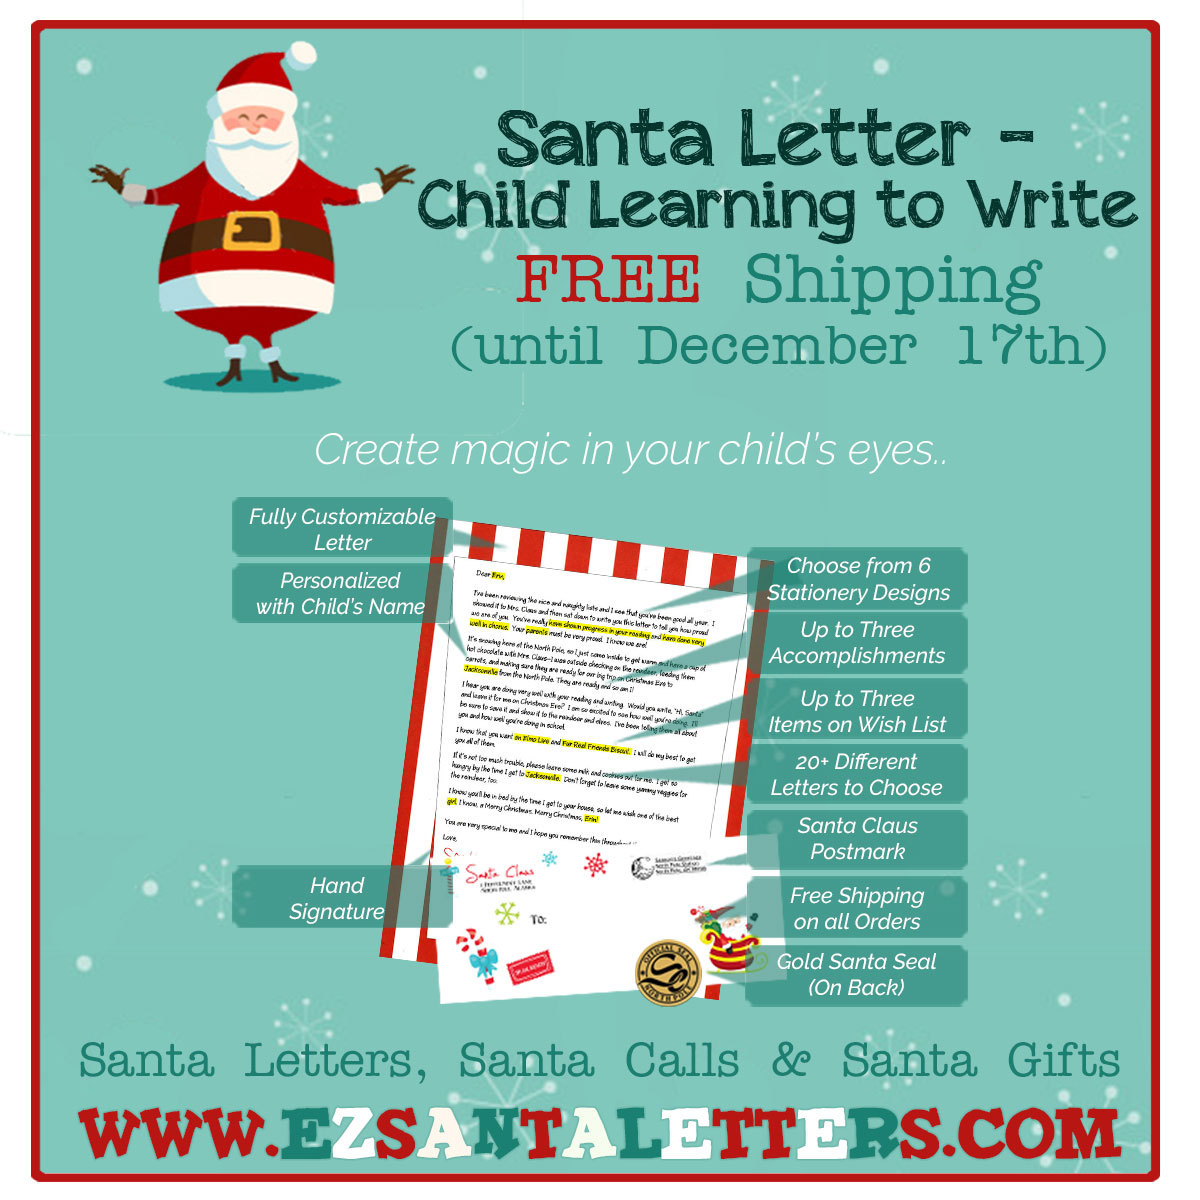 Santa Letter - Letter From Santa for a Child Away at Christmas